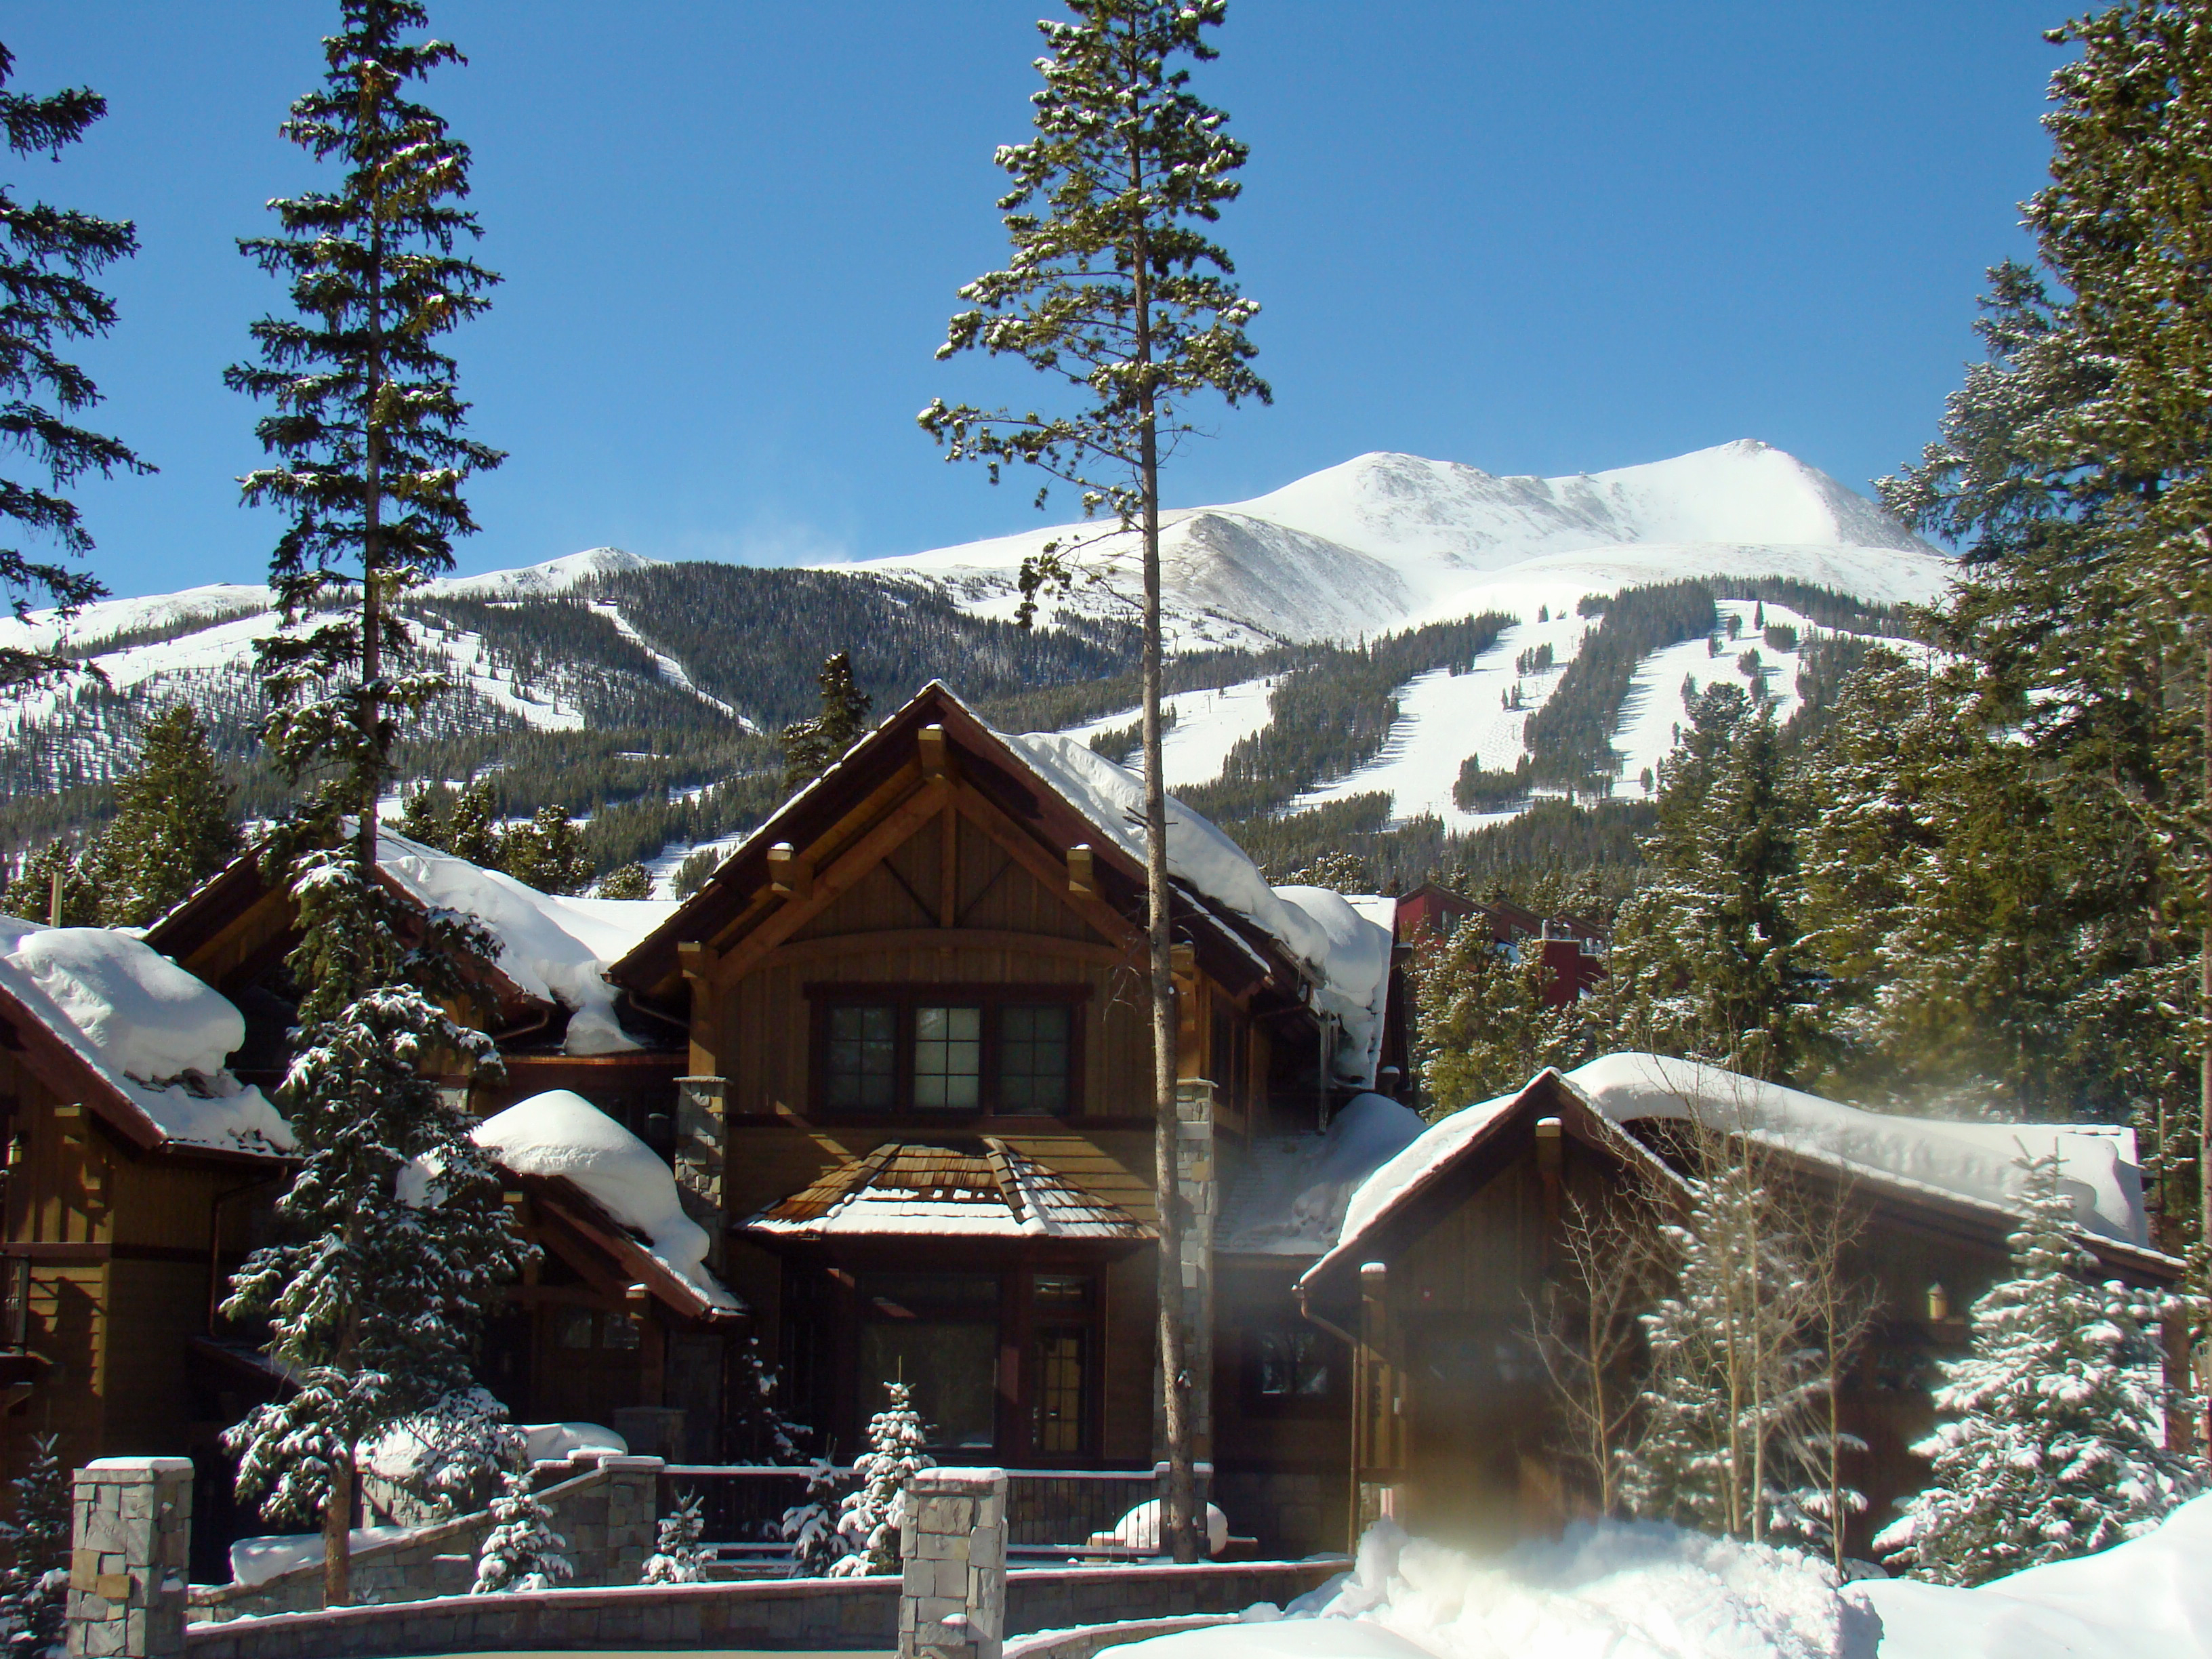 mls cottages point drive summit highpoint co high breckenridge